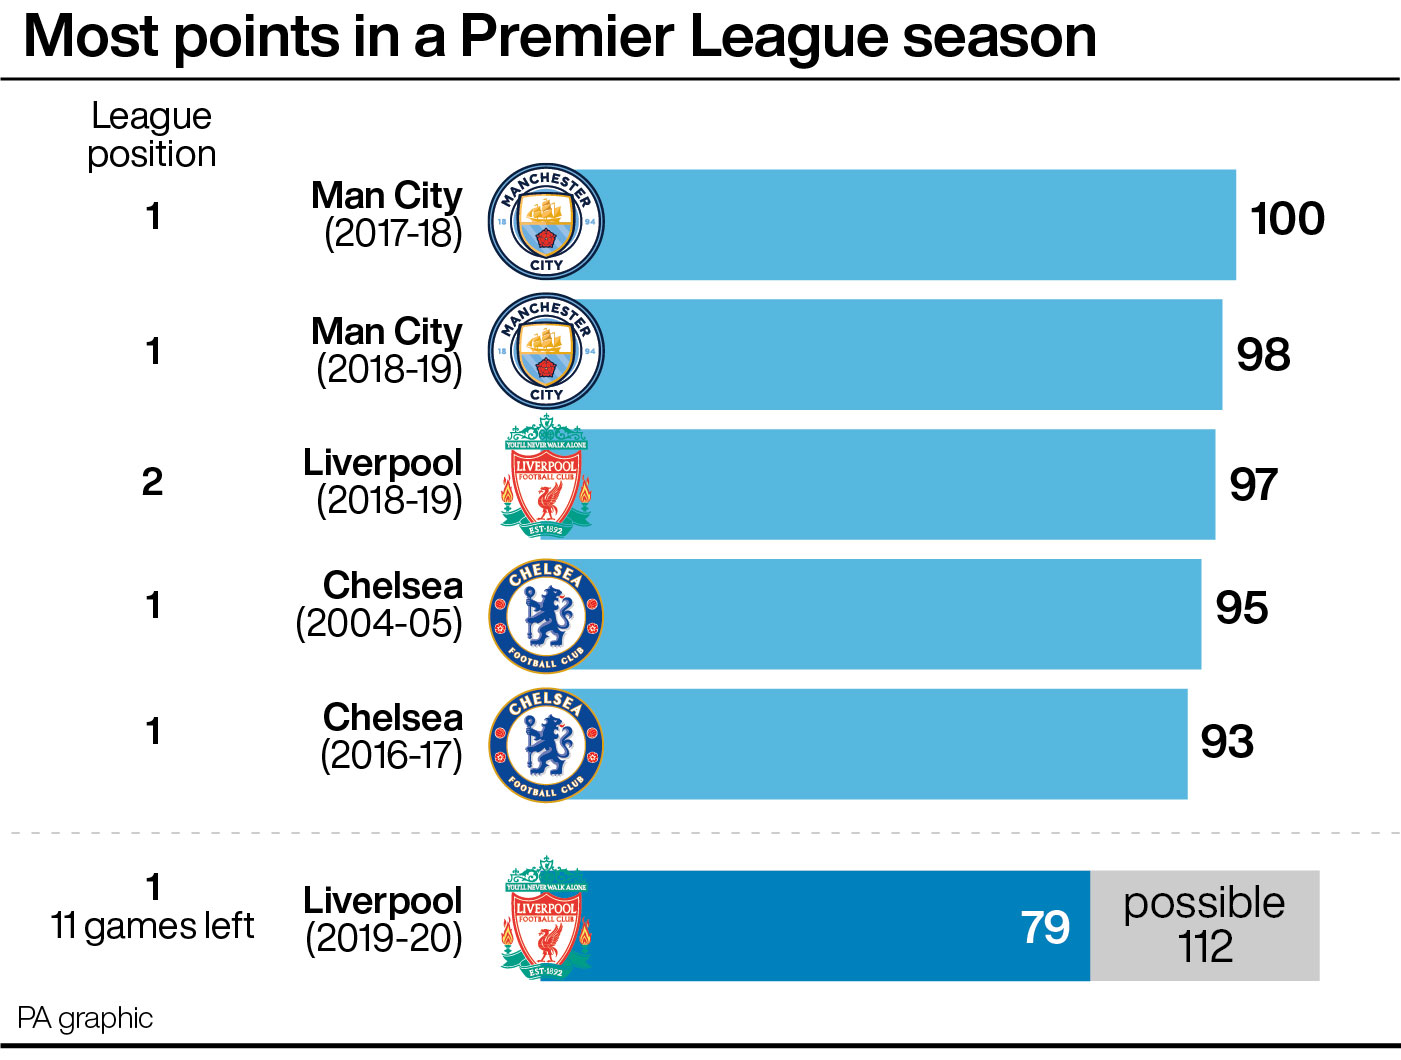 Most points in a Premier League season